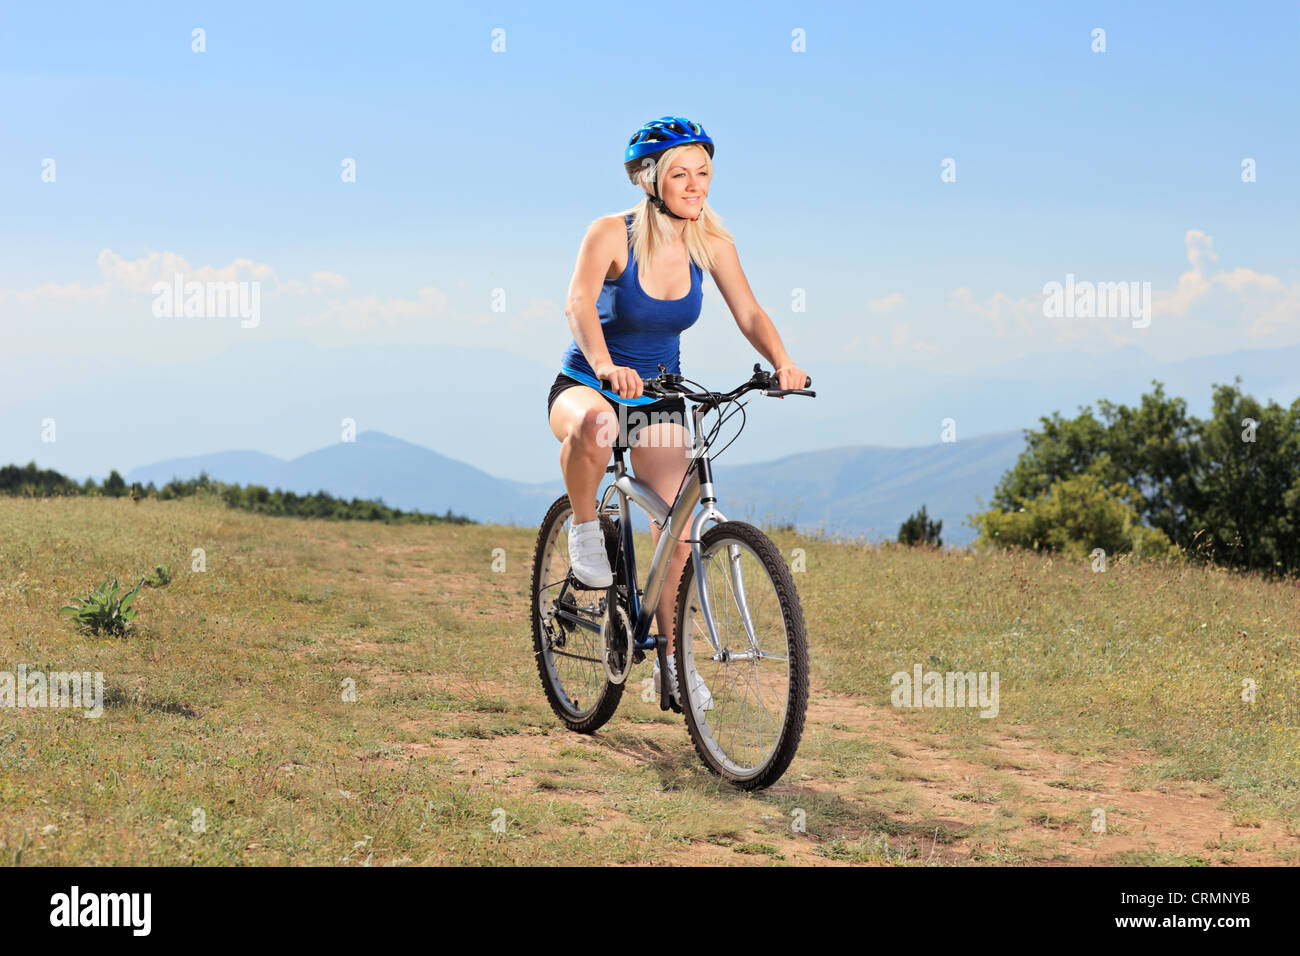 Young female bicyclist riding on a mountain - Stock Image